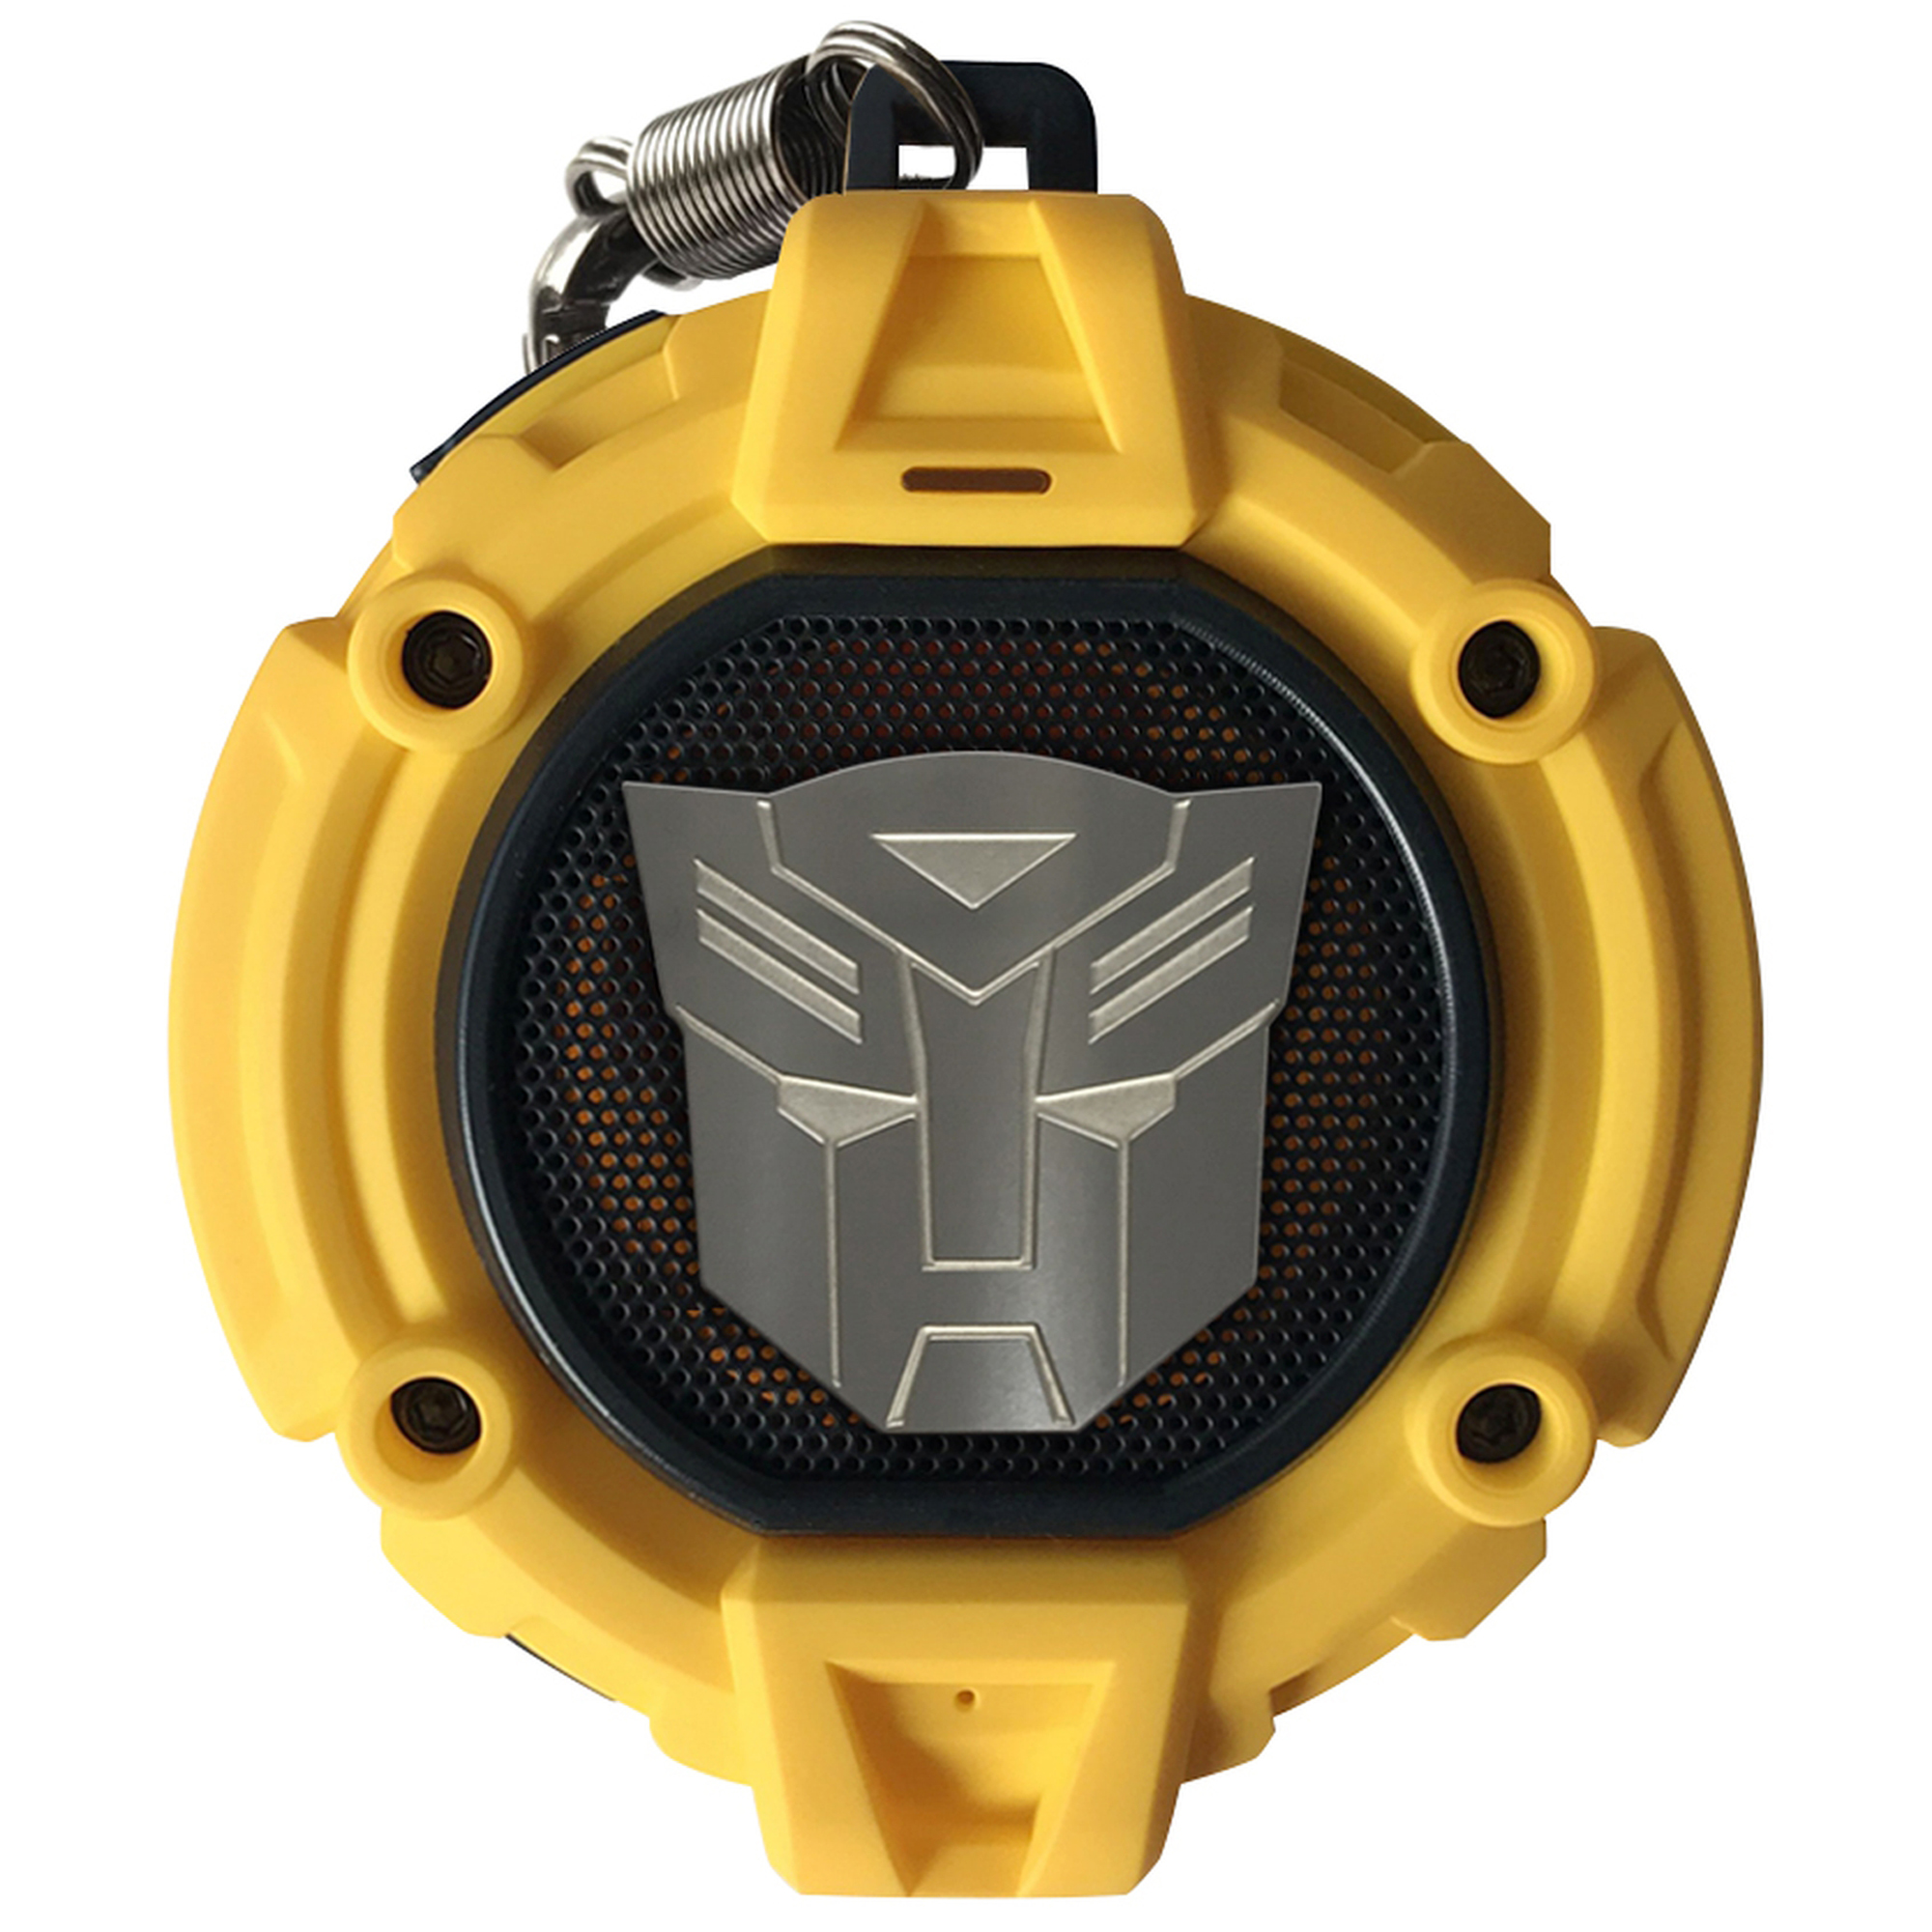 Transformers: Licensed Bluetooth v4.2 HD Wireless Portable Speaker - BUMBLEBEE YELLOW - LED Autobot Shield Projector, Built-in Mic, Hands-Free, Rechargeable - Swordfish Tech